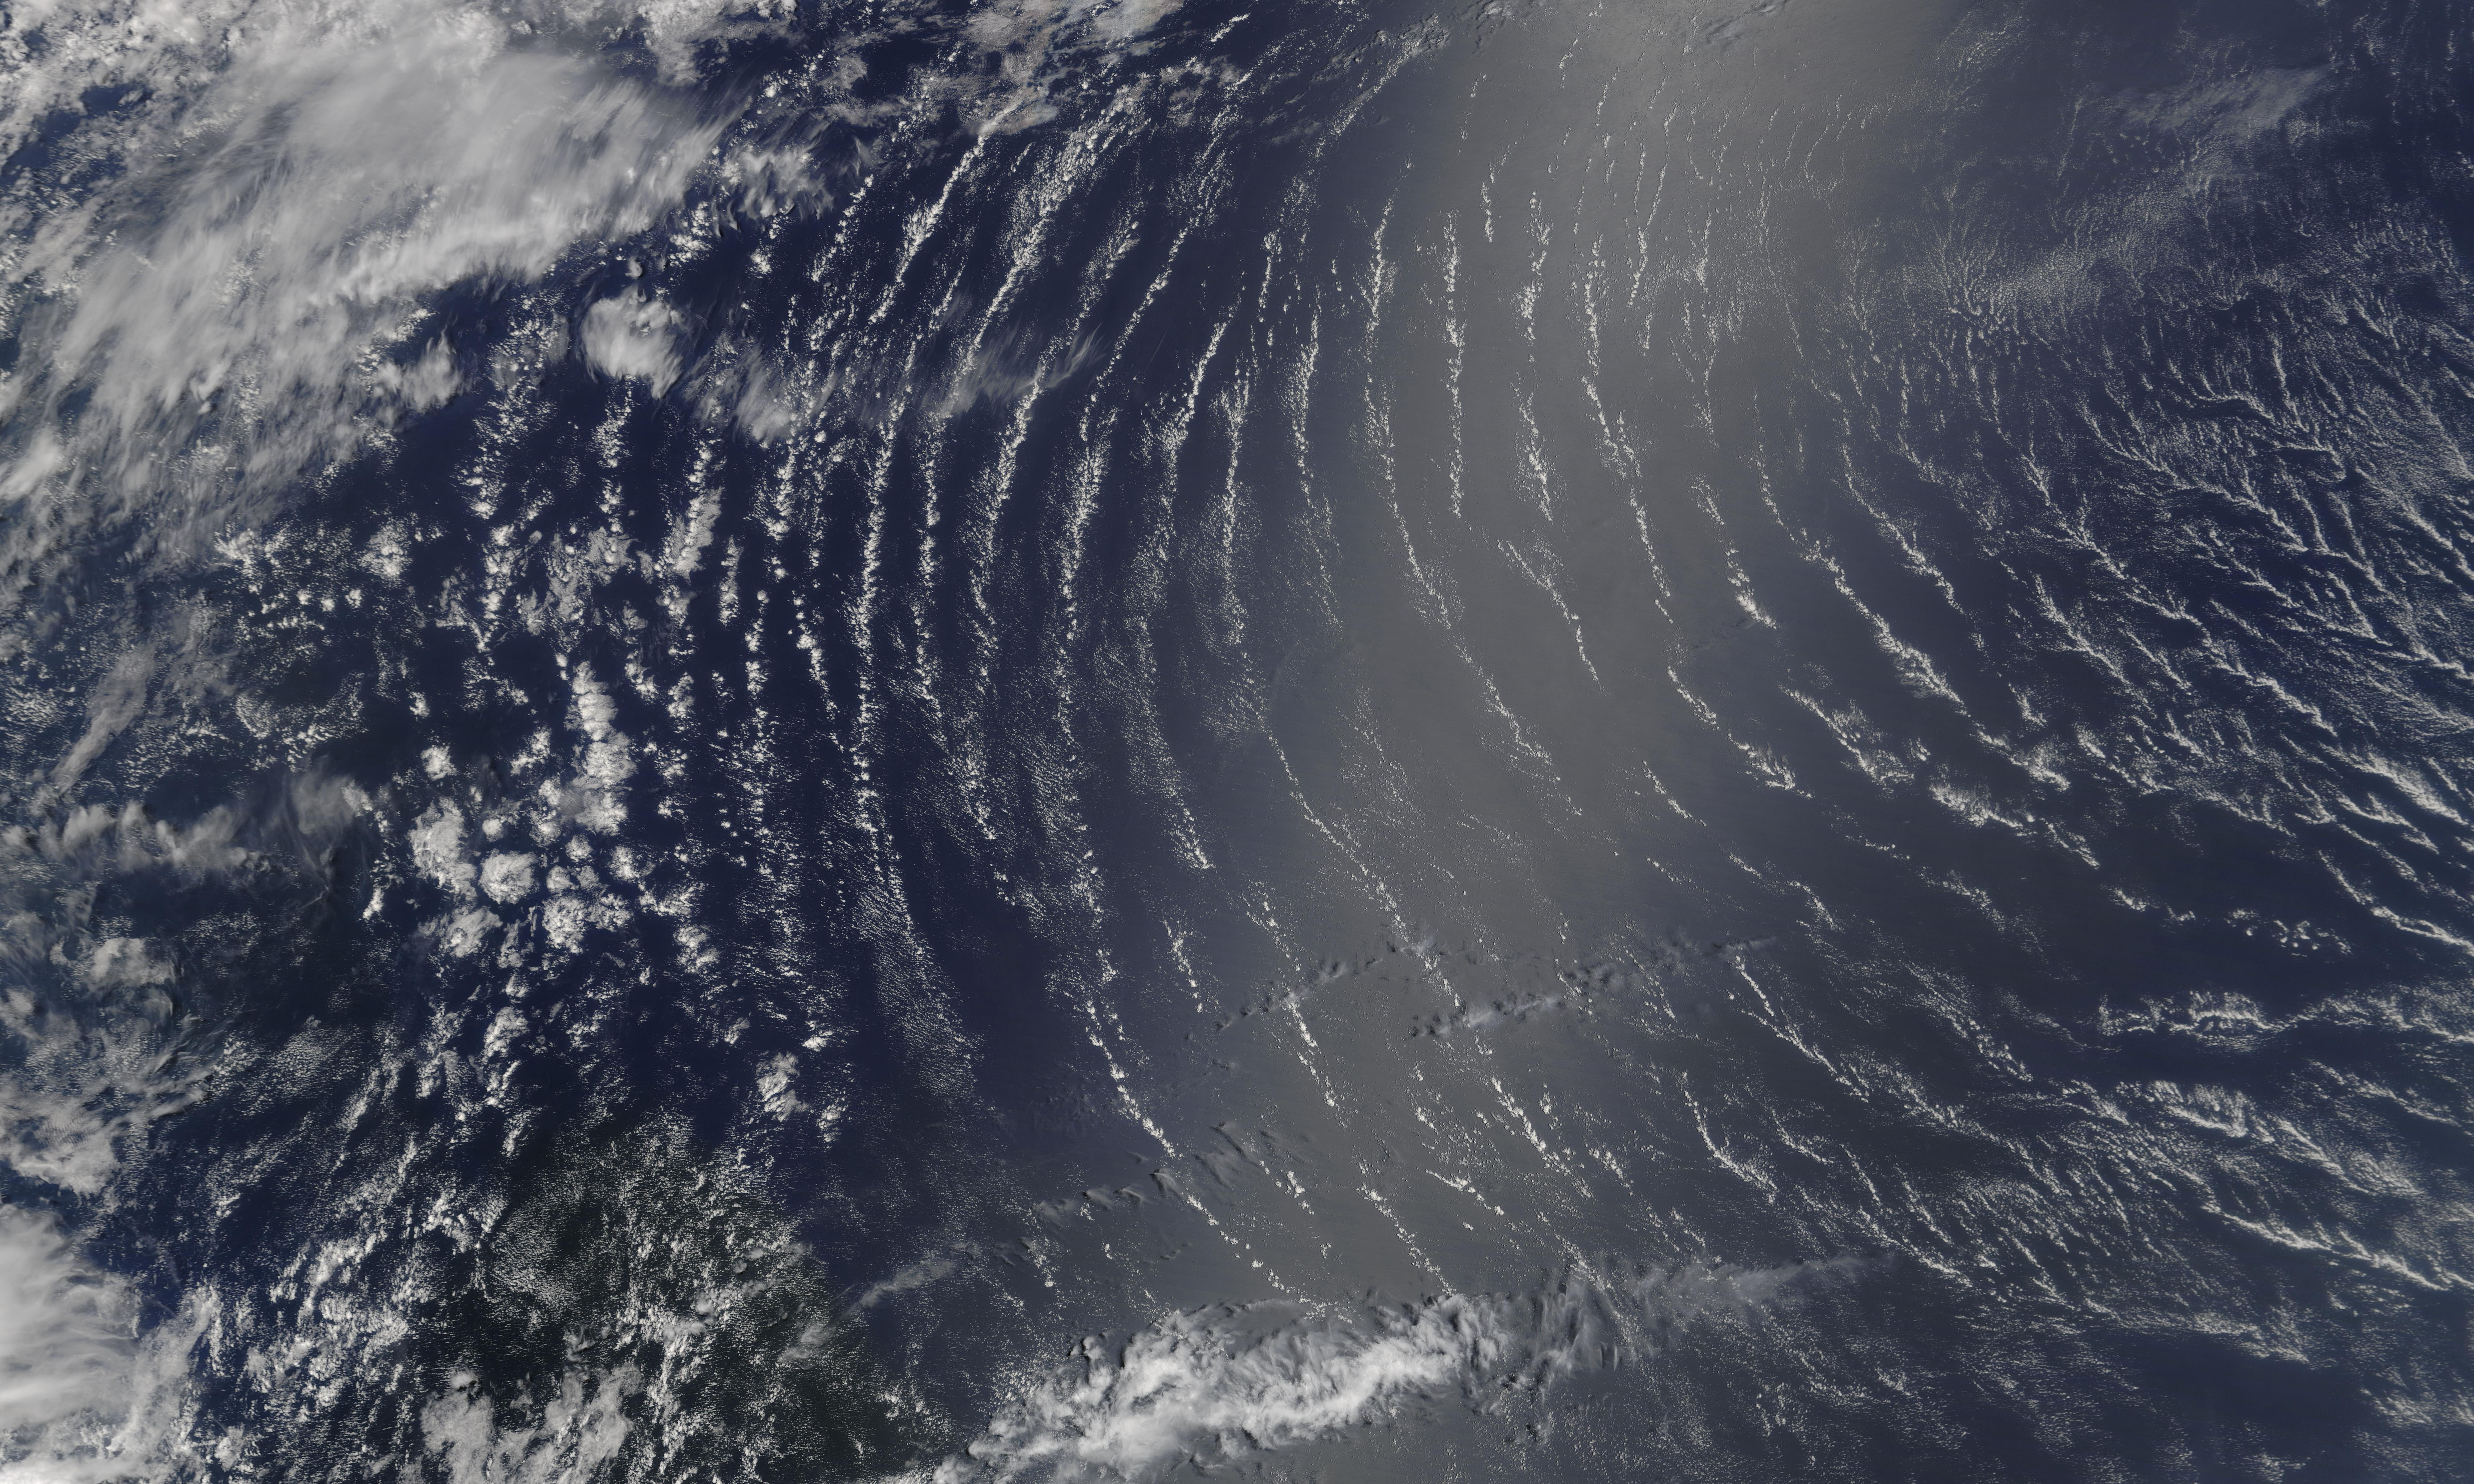 Climate crisis may be increasing jet stream turbulence, study finds